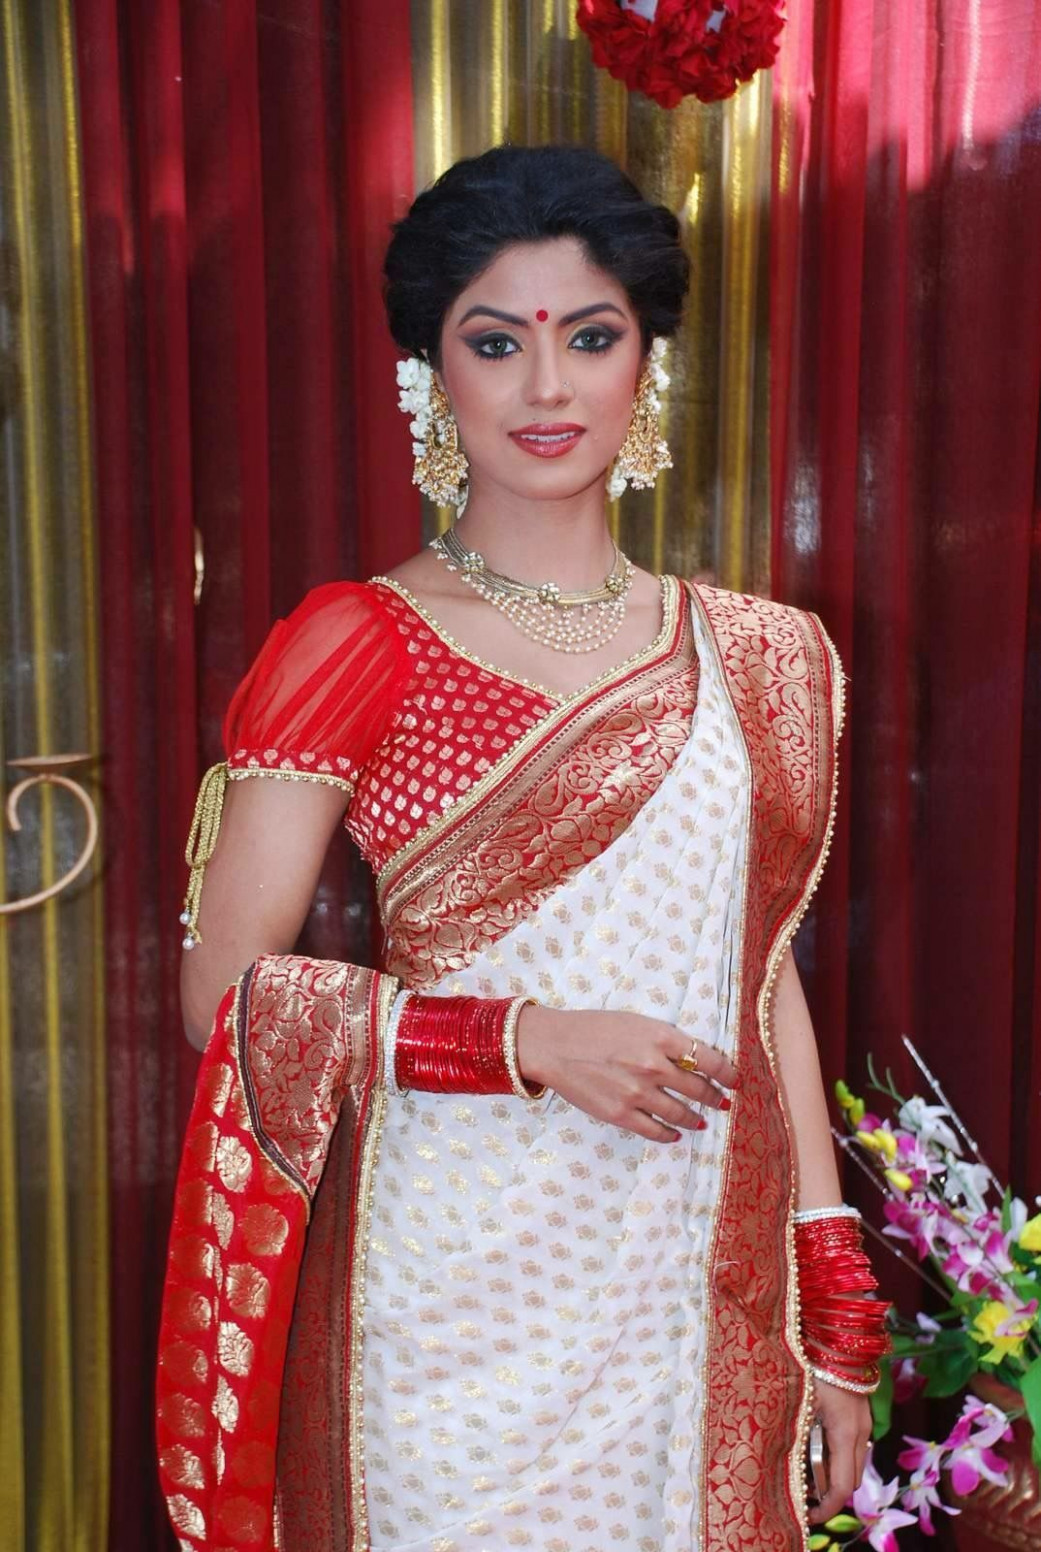 How to Wear Bengali Saree Step by Step Learn from Images